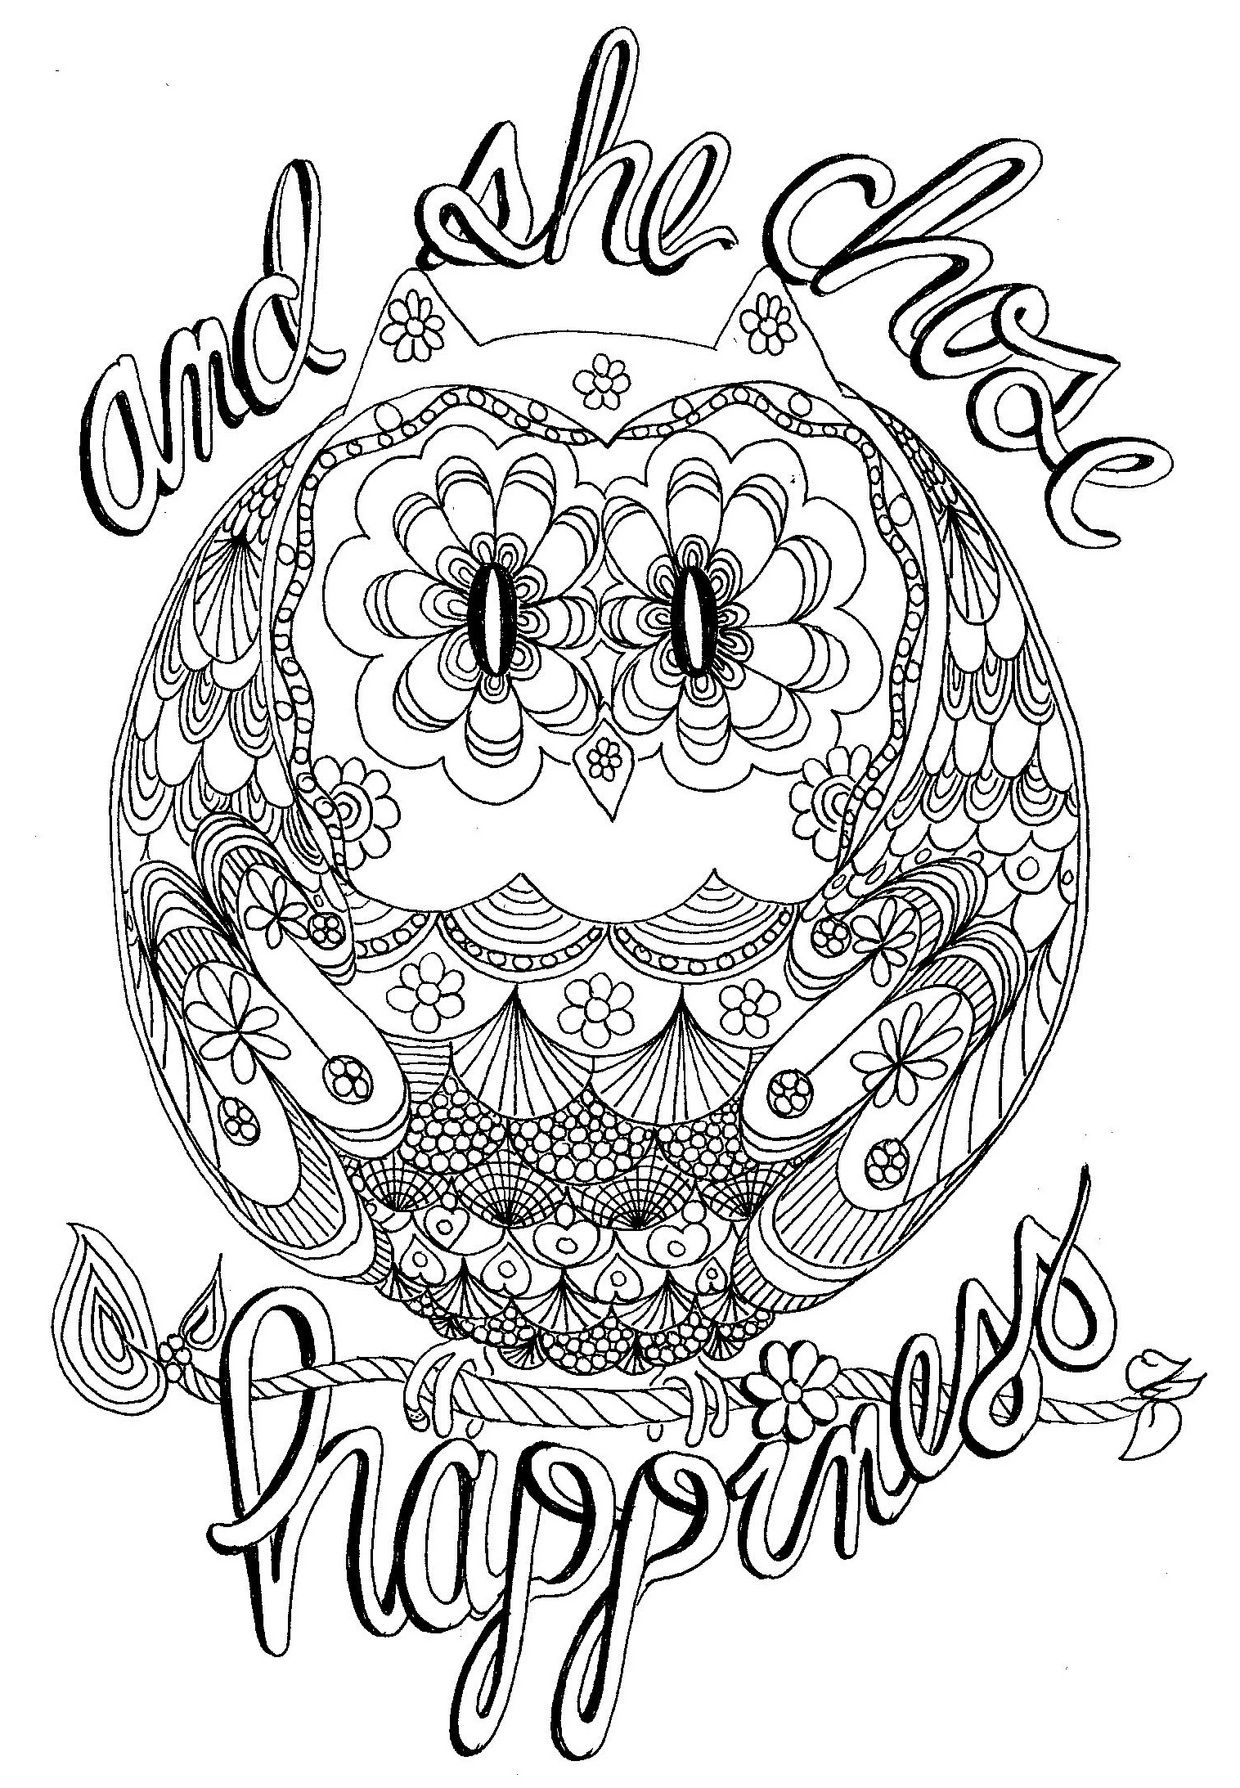 Happy Hippy Owl Coloring Page Adult Coloring Books Owl